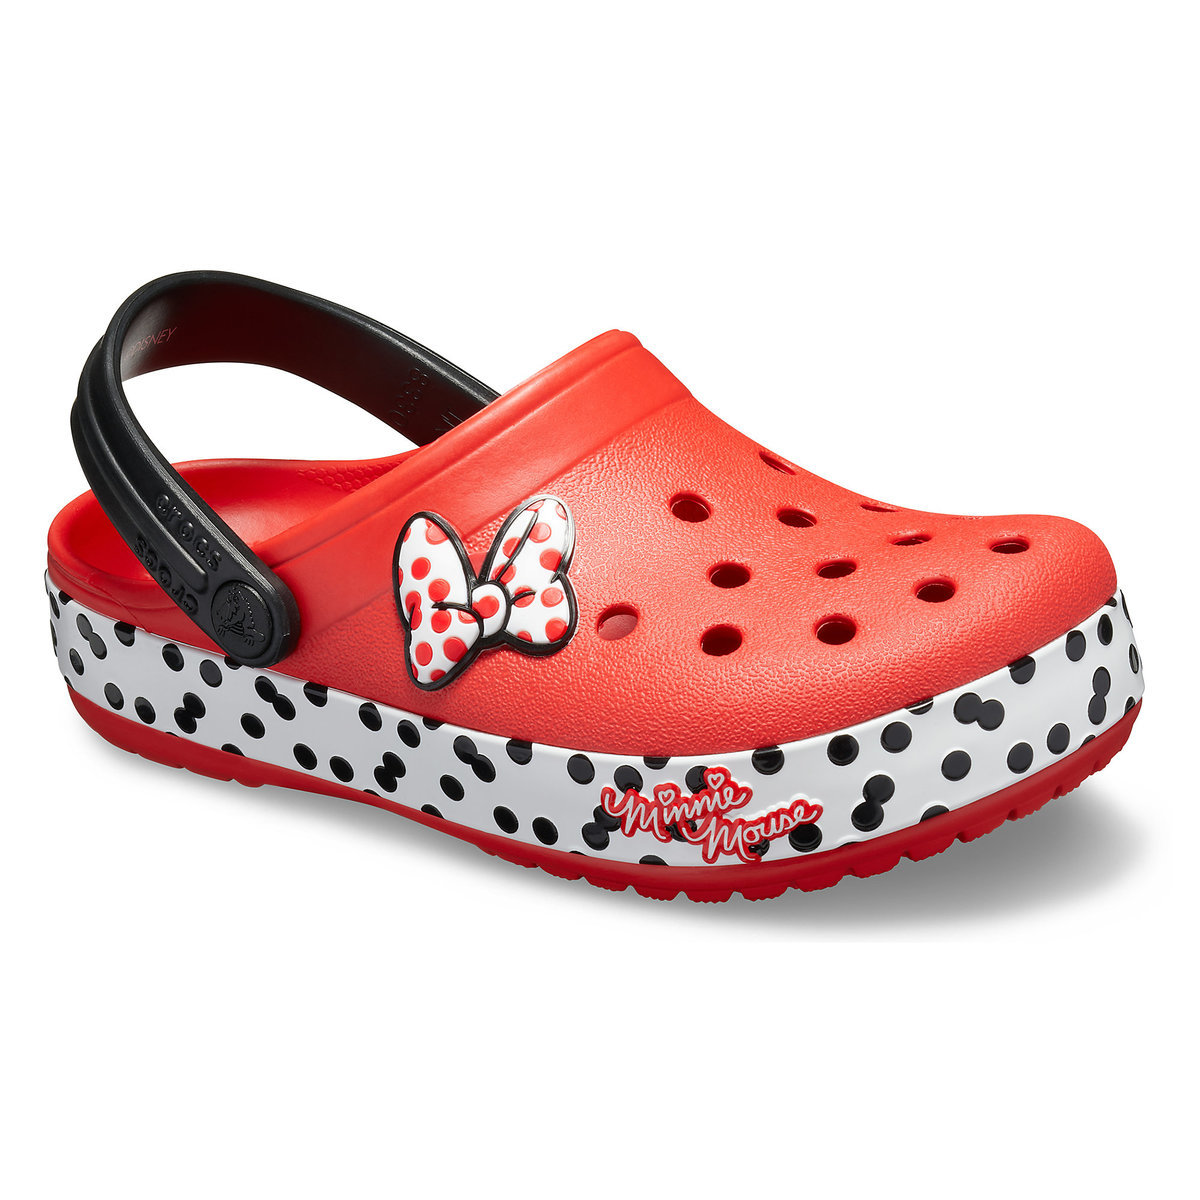 77c2b5865c73 Product Image of Minnie Mouse Crocband Clogs for Kids by Crocs   1